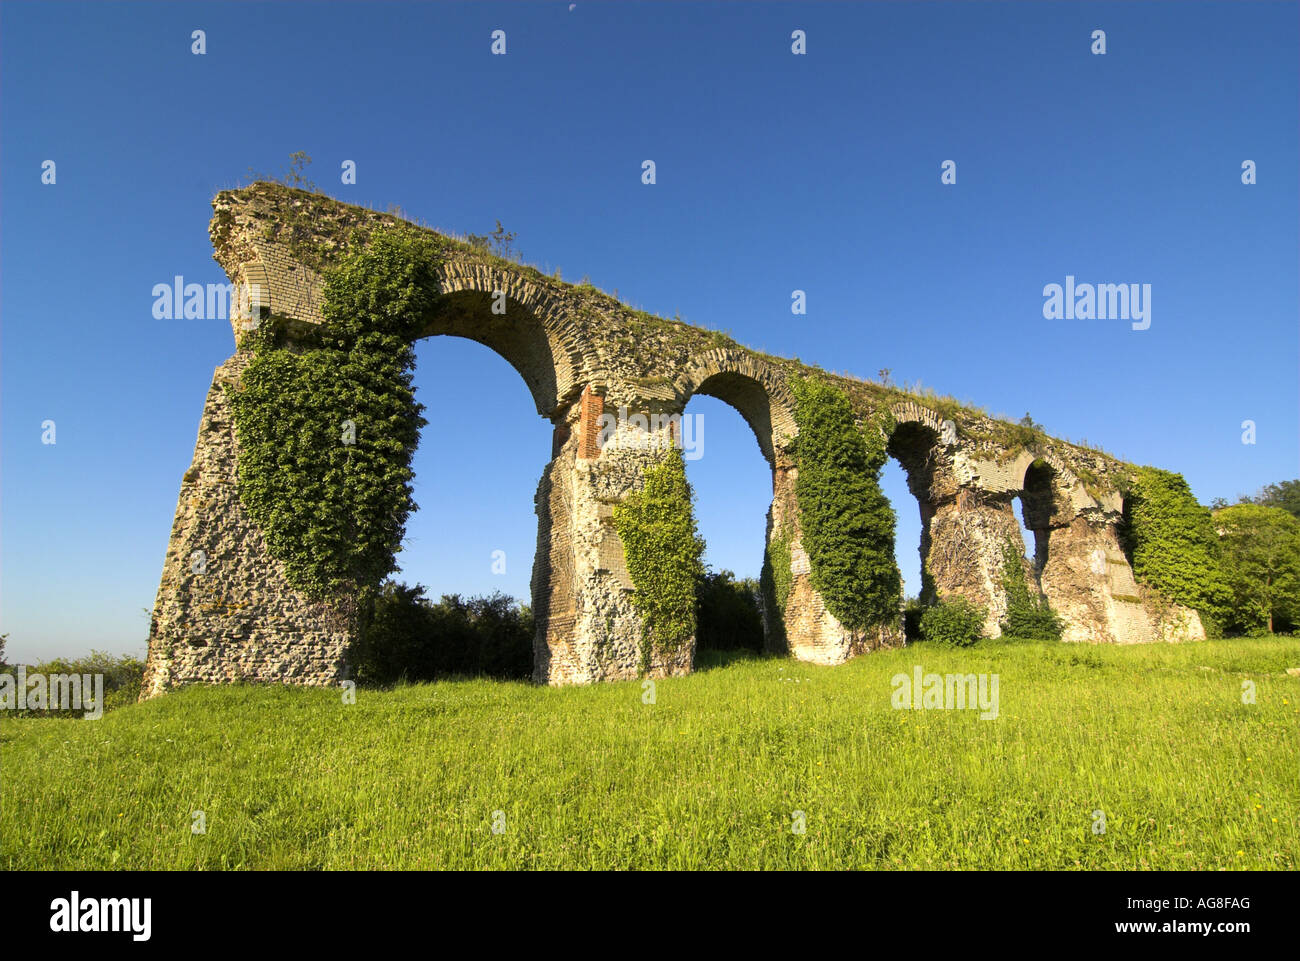 Roman aqueduct from the second century, France, Lorraine, Jouy-aux-Arches - Stock Image